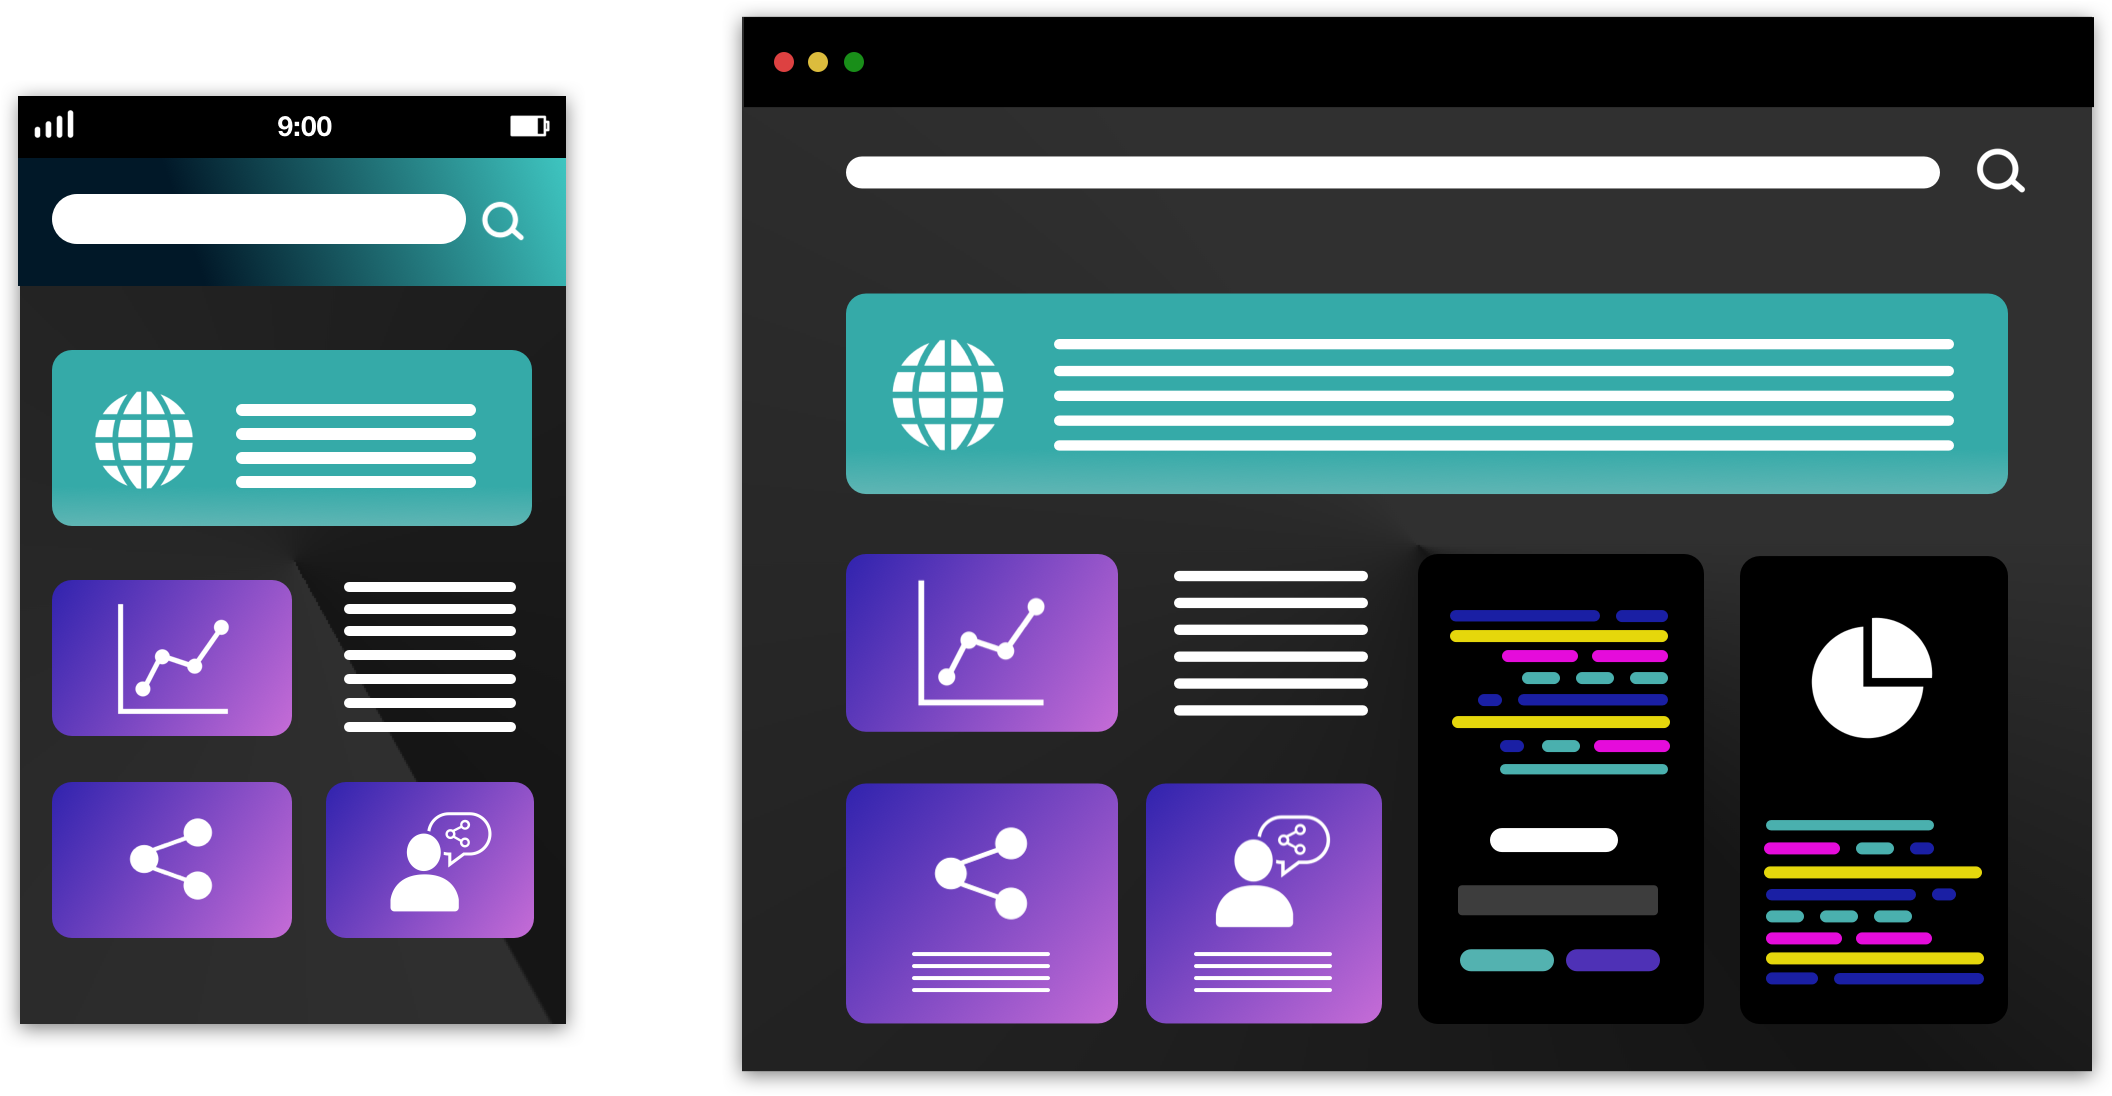 web app and website user interfaces